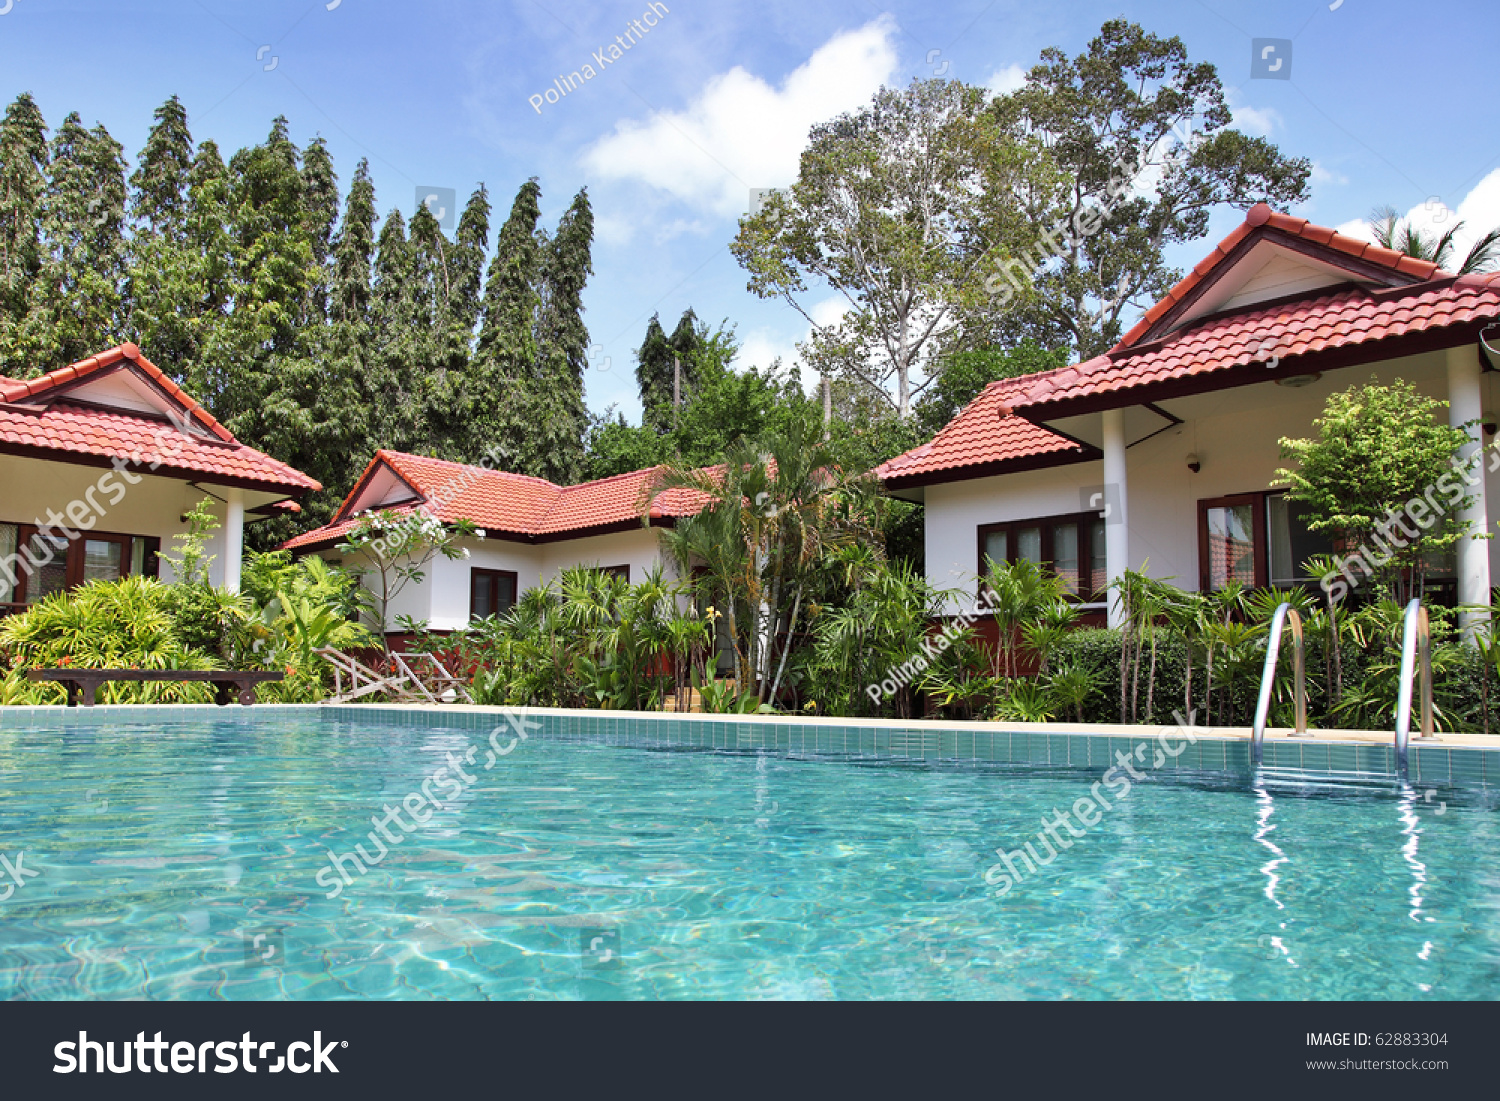 tropical houses with beautiful garden and pool preview save to a lightbox - Beautiful Garden Pictures Houses